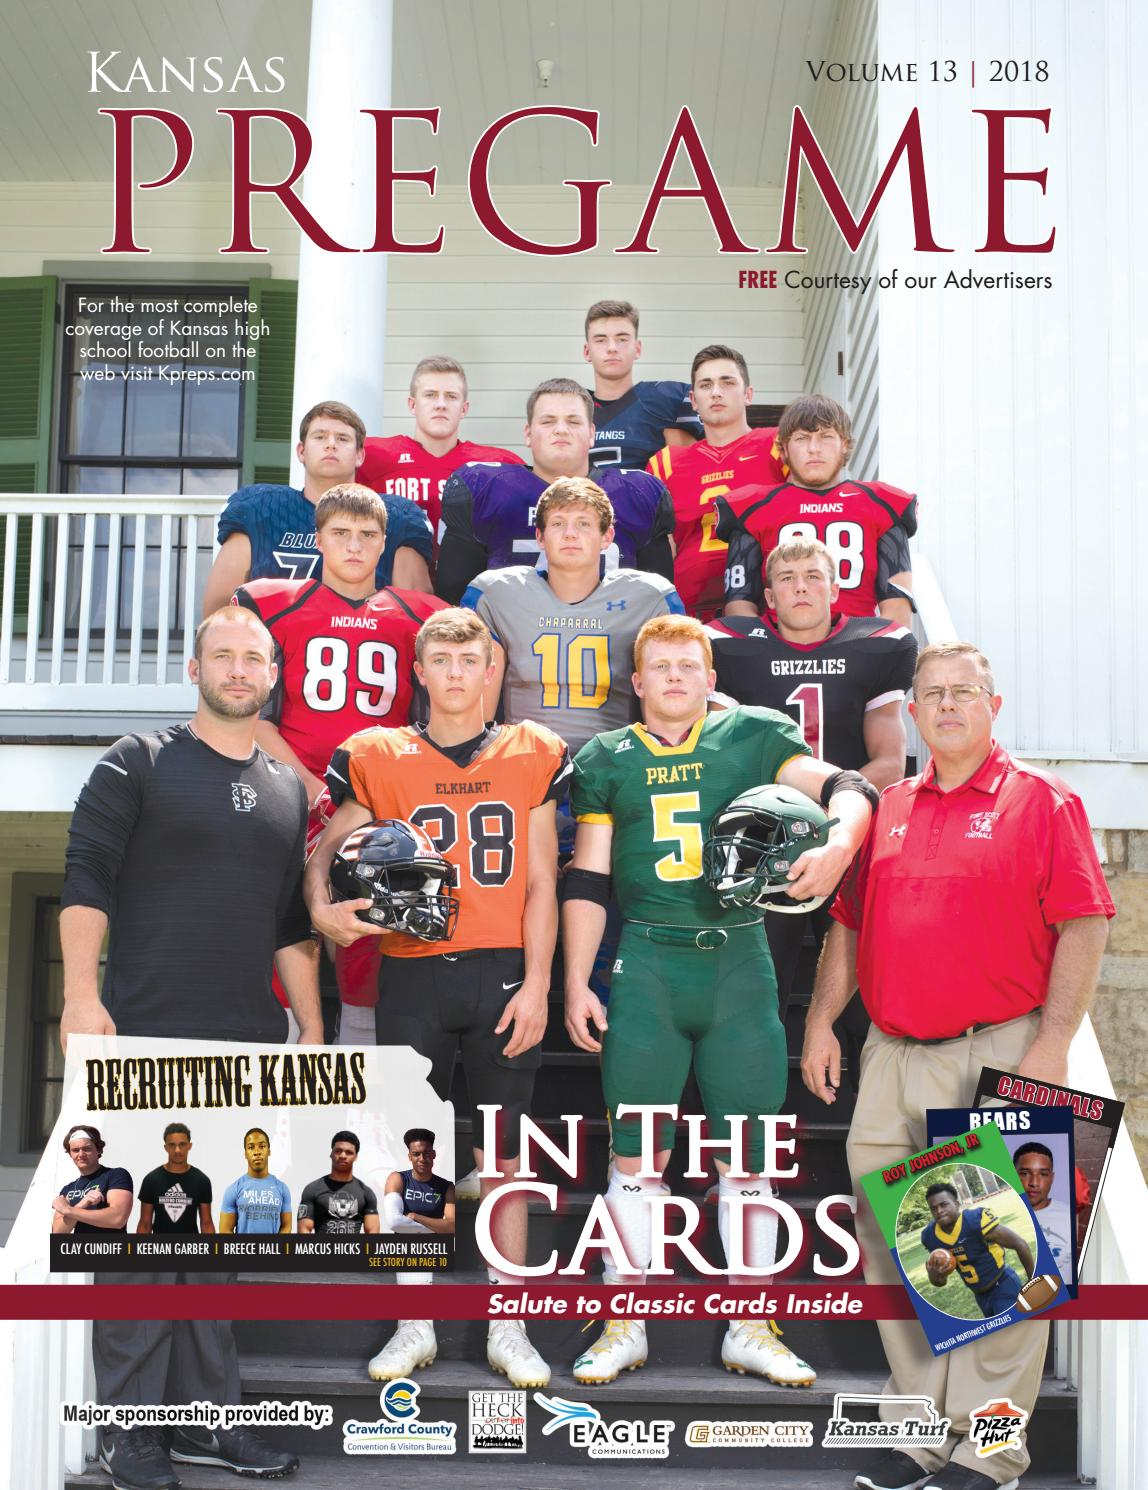 Kansas Football Preview 2018 by Sixteen 60 Publishing Co. - issuu 462f13bd8bb2